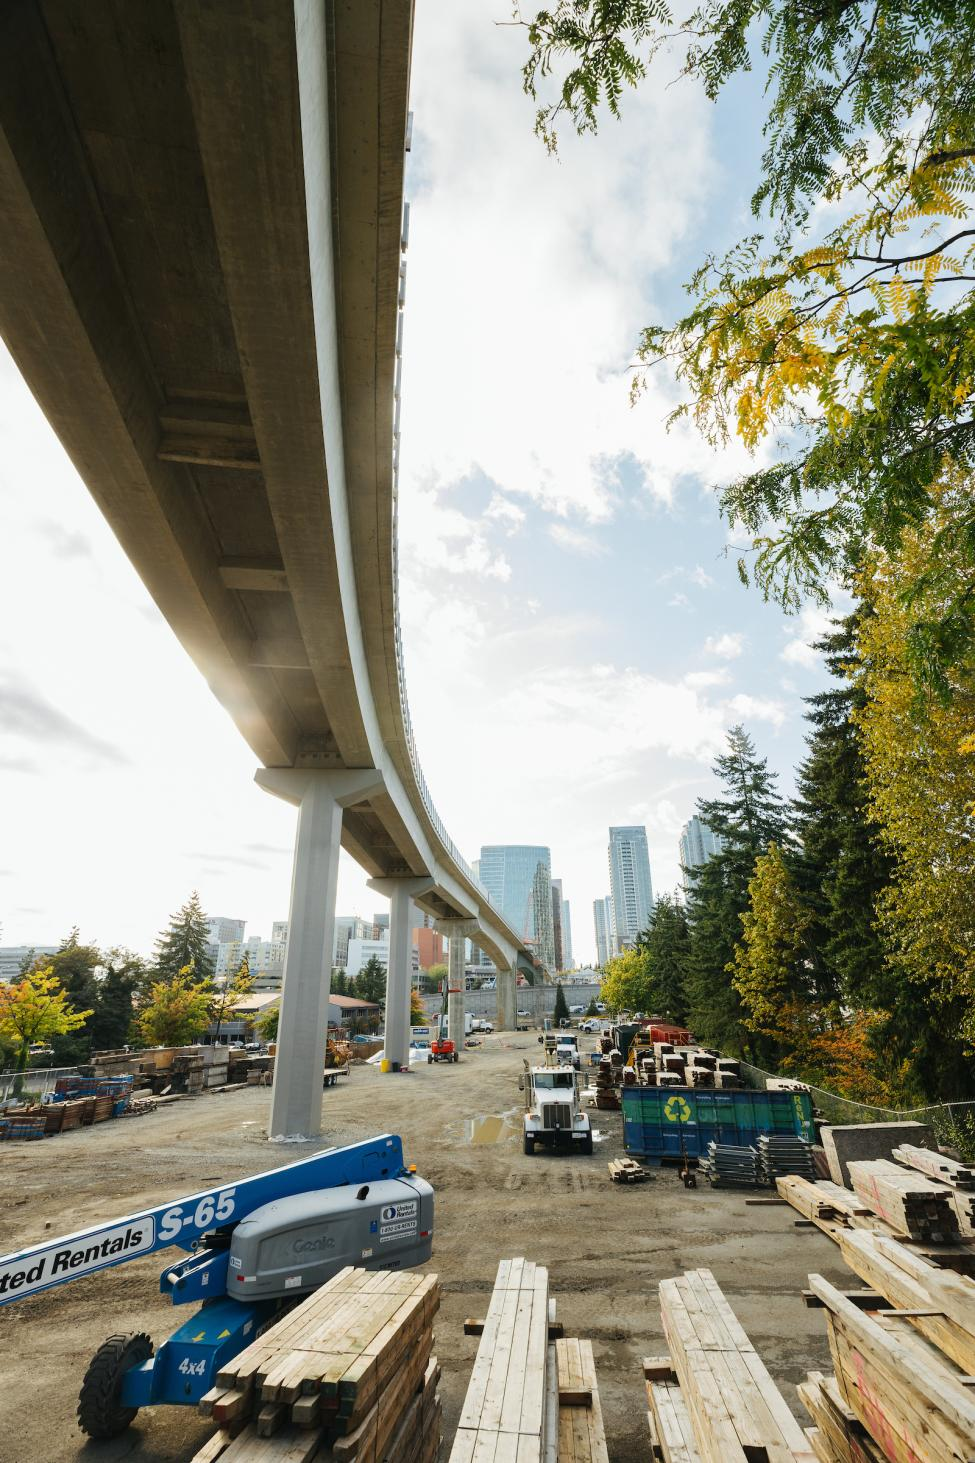 A view from underneath the new light rail bridge in downtown Bellevue.